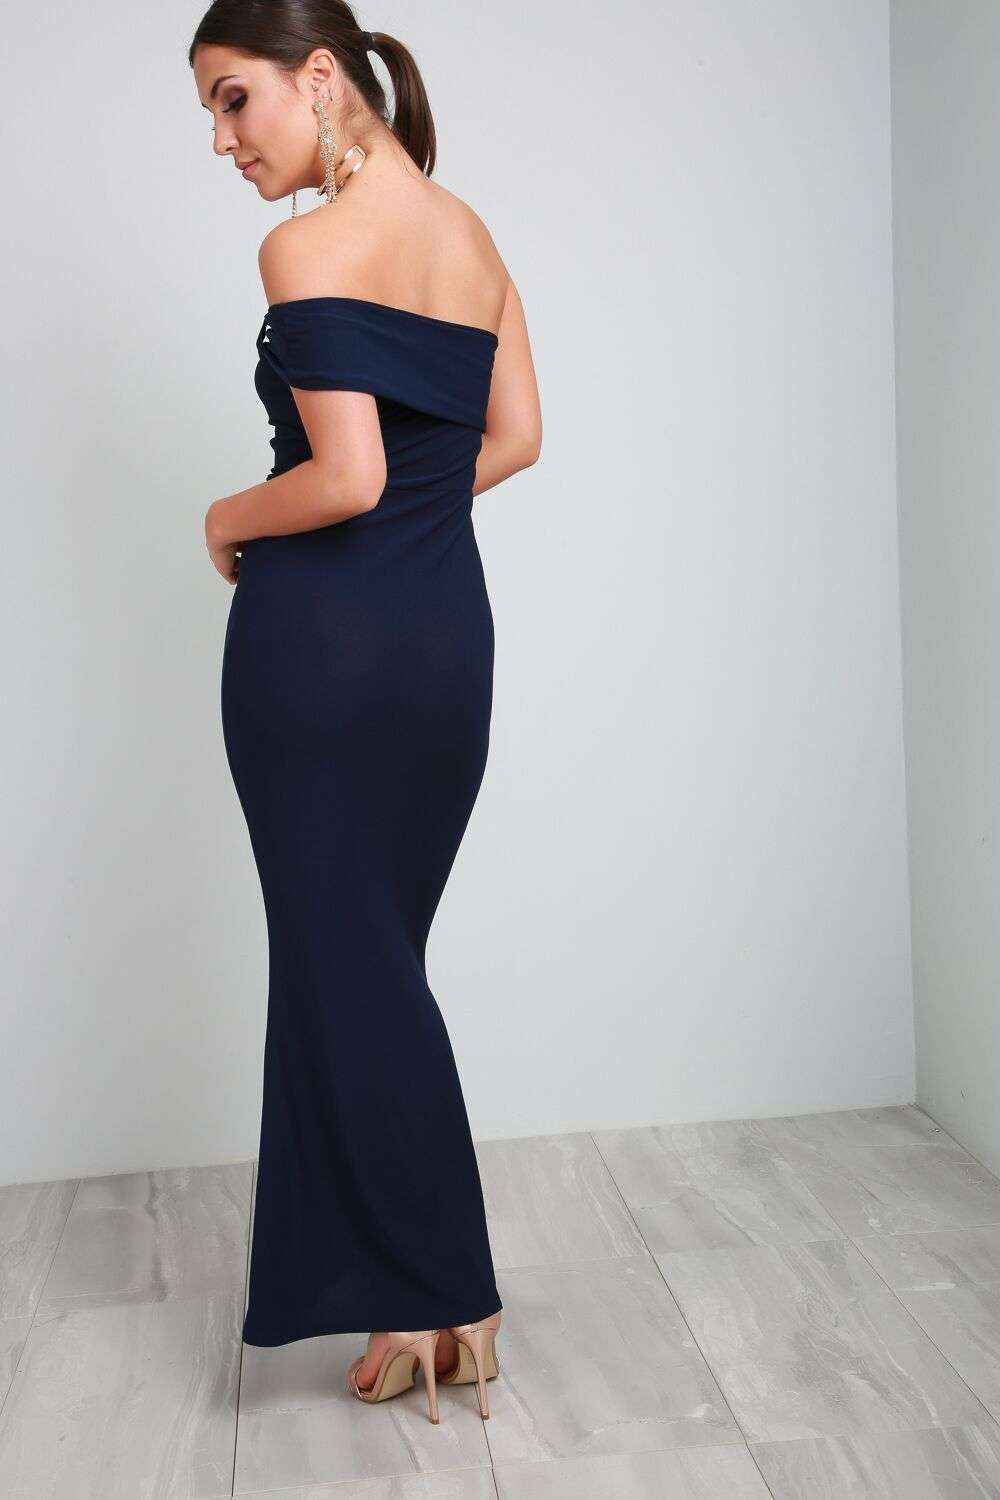 Callie Bardot Bow One Shoulder Maxi Dress - bejealous-com